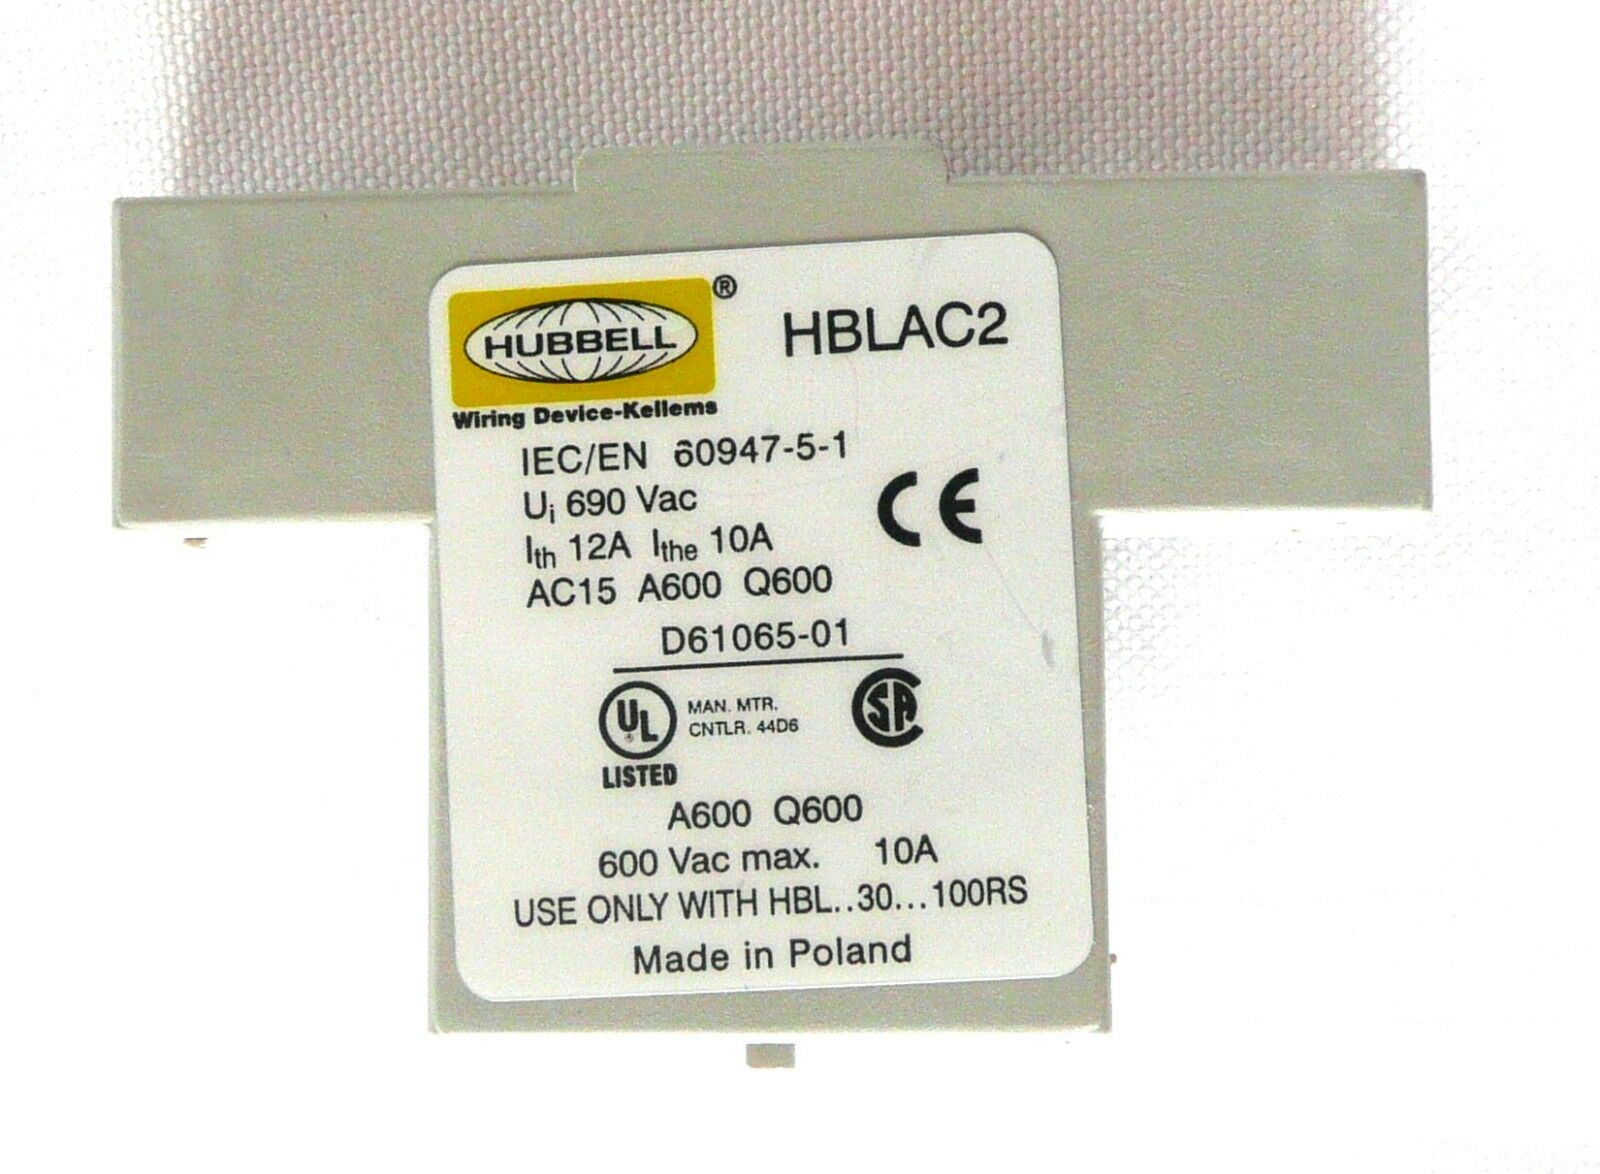 Hubbell HBLAC2 Auxiliary Contact 10A 600VAC